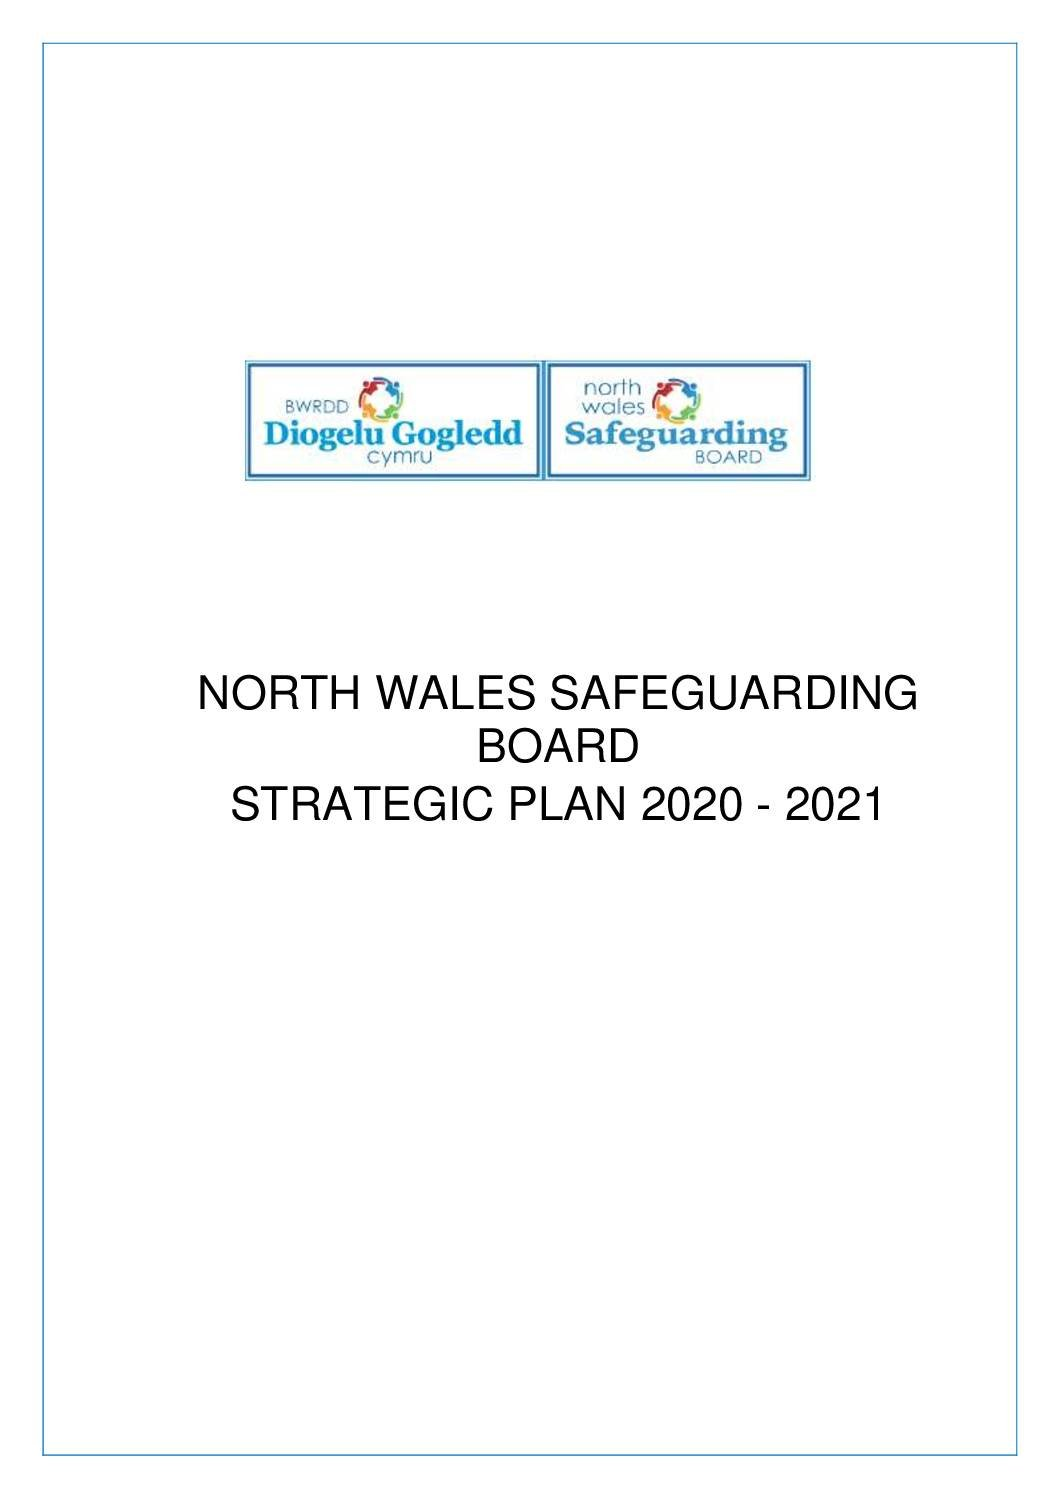 NORTH WALES SAFEGUARDING BOARD STRATEGIC PLAN